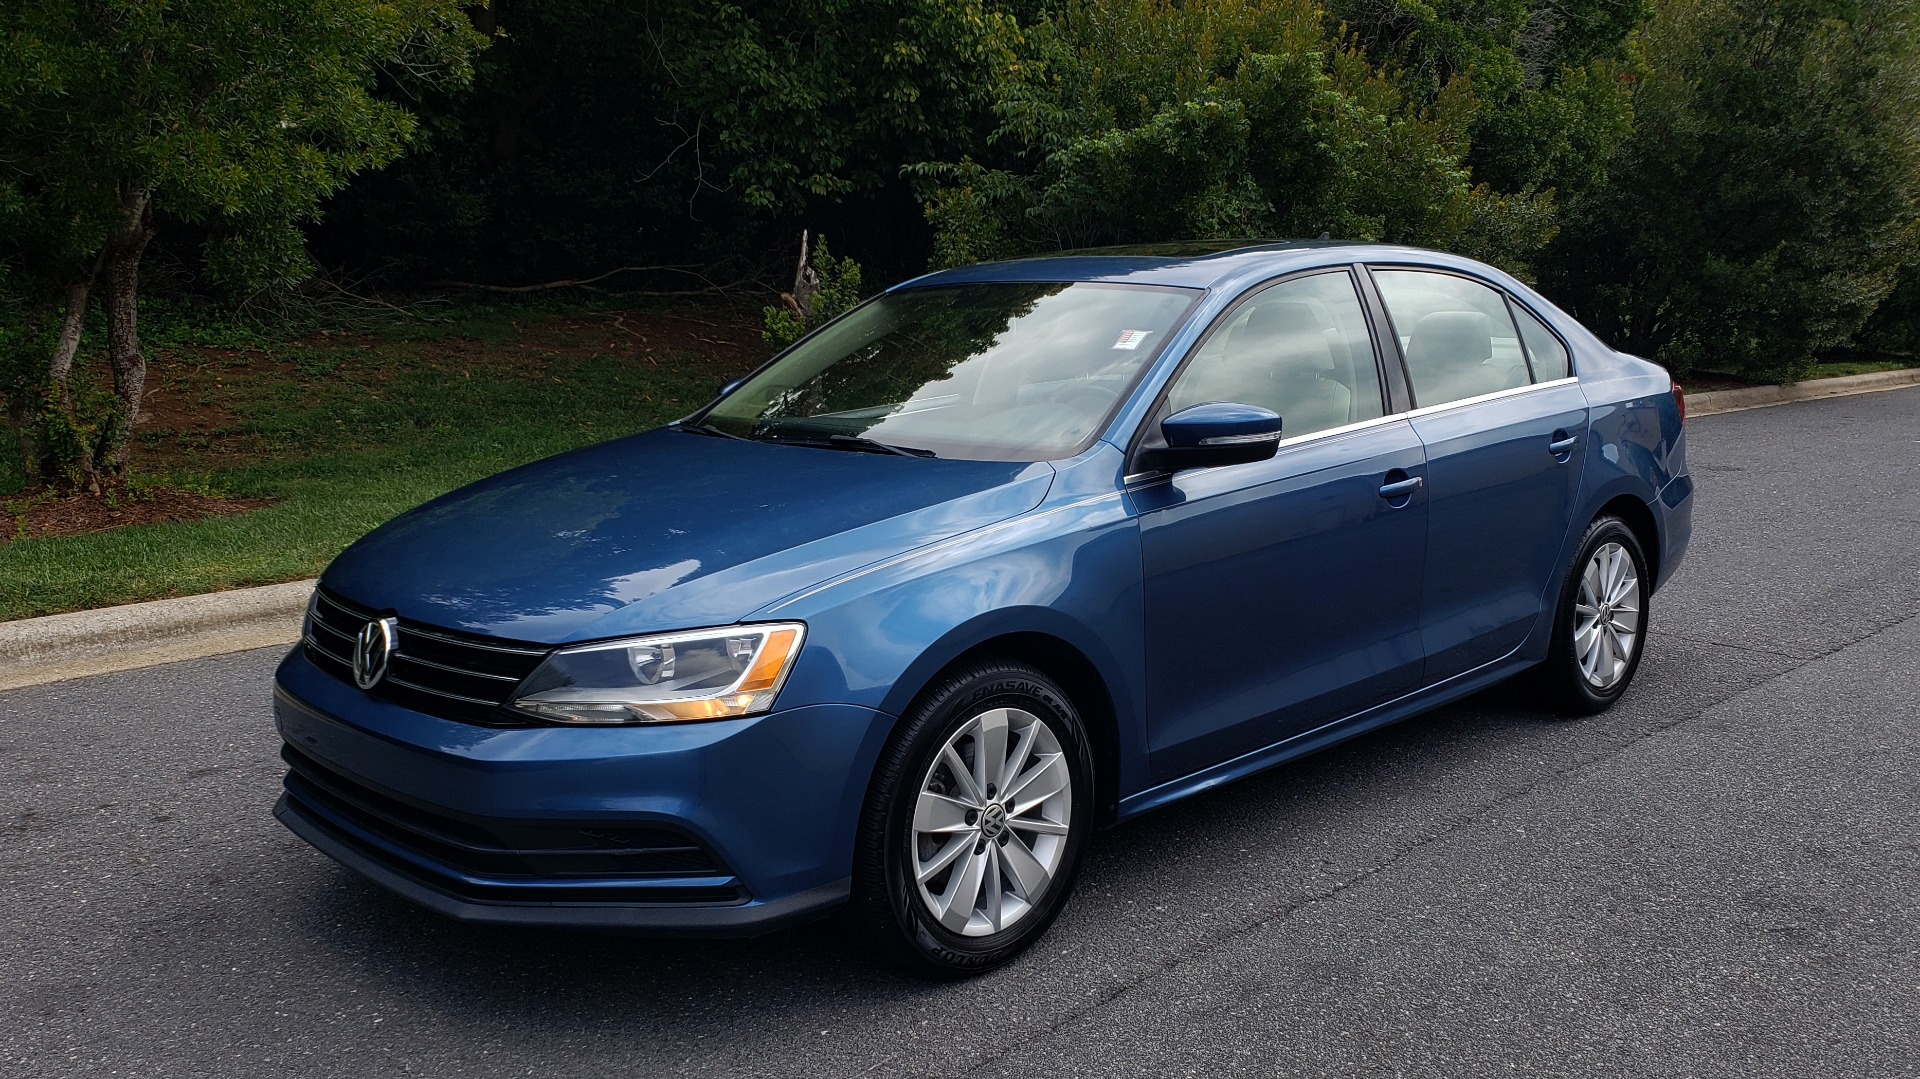 Used 2016 Volkswagen JETTA SEDAN 1.4T SE W/ CONNECTIVITY / 6-SPD AUTO / HTD STS / SUNROOF / REARVIEW for sale Sold at Formula Imports in Charlotte NC 28227 1